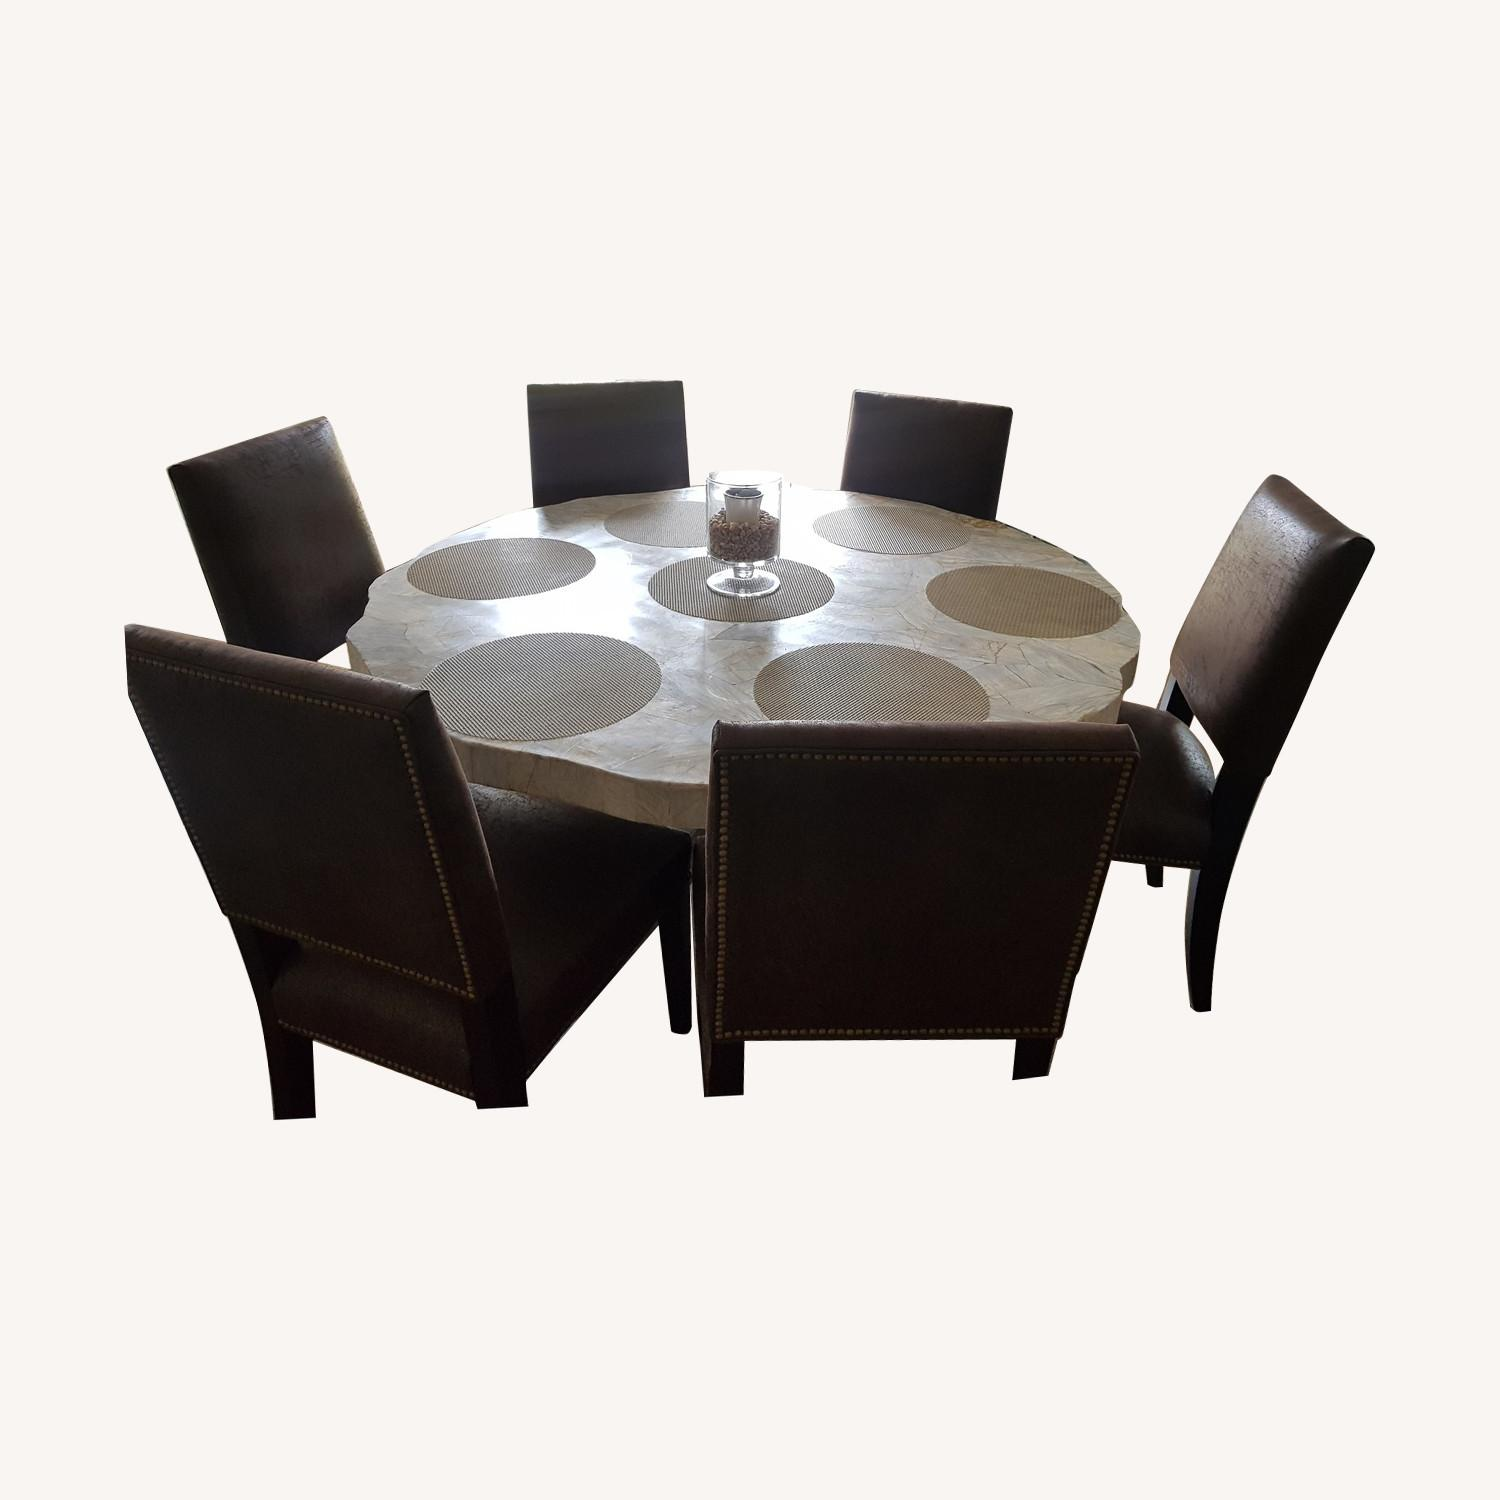 Arhaus Luxury Peta Round Dining Table with 6 Chairs - image-0